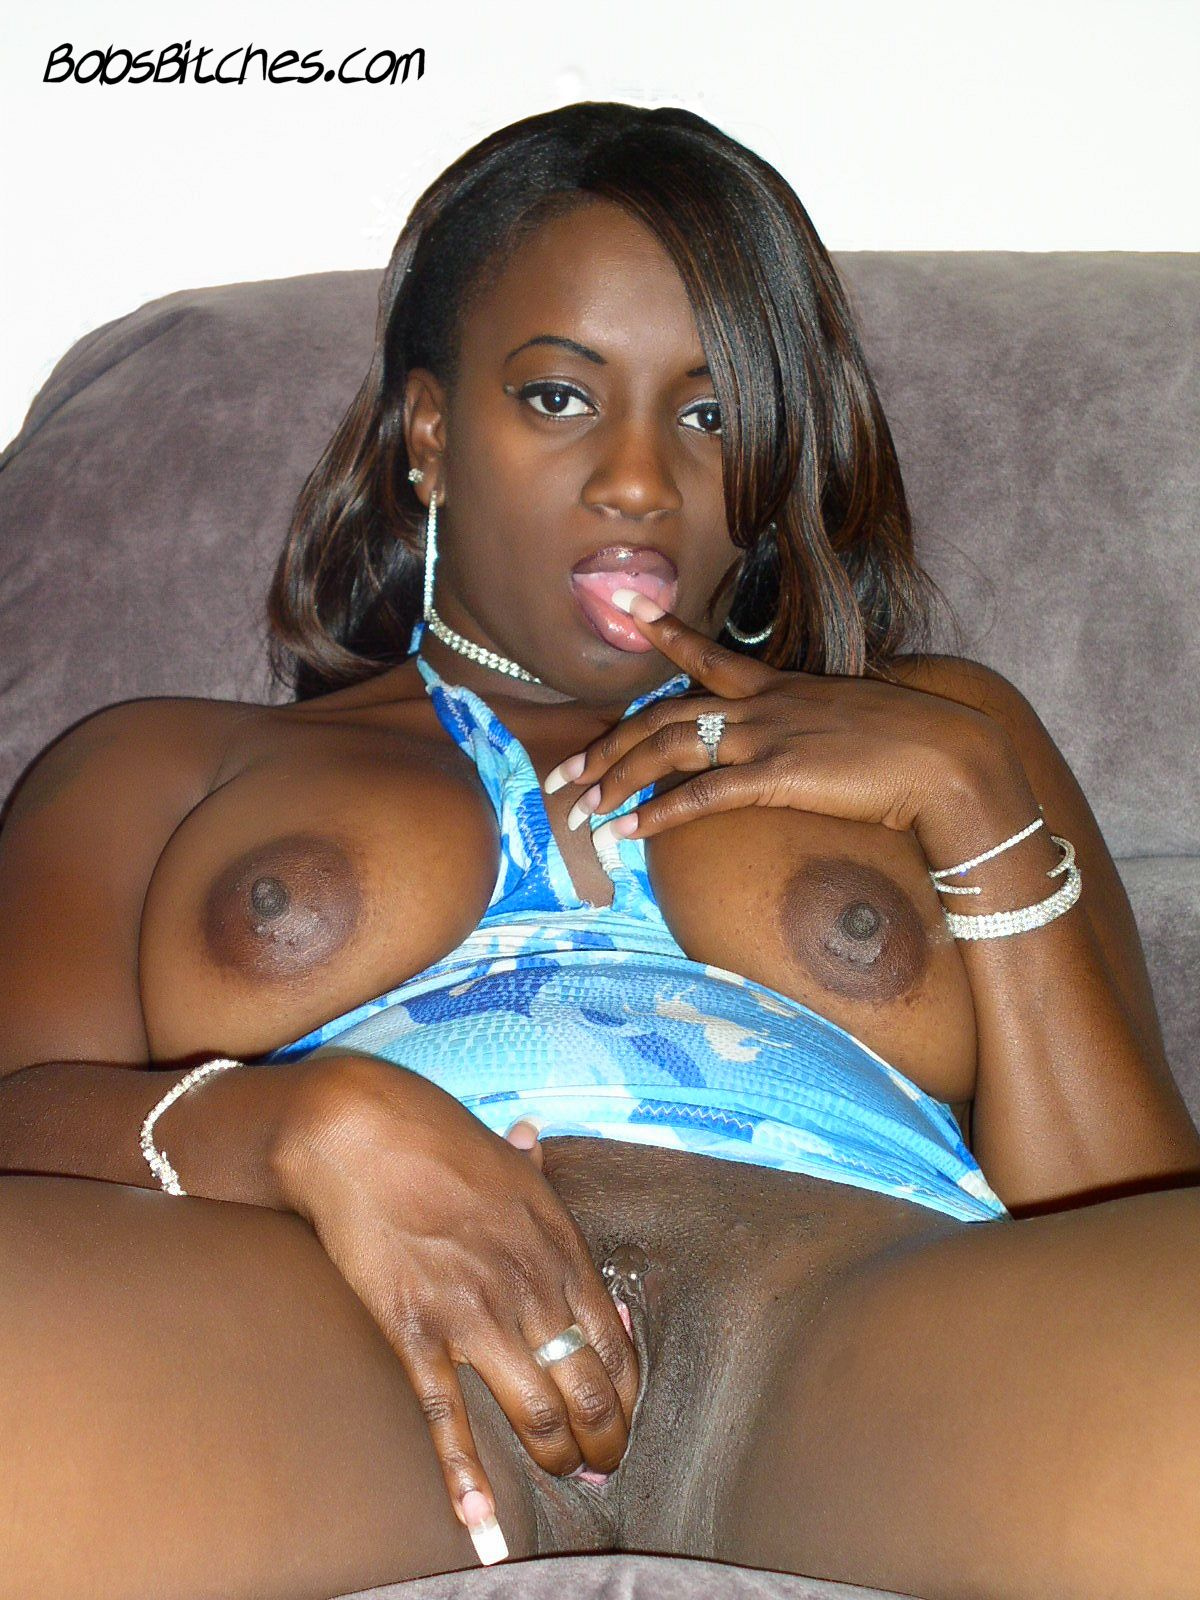 Big tit ebony milf, Destiny, fingers her pussy and large labia lips.